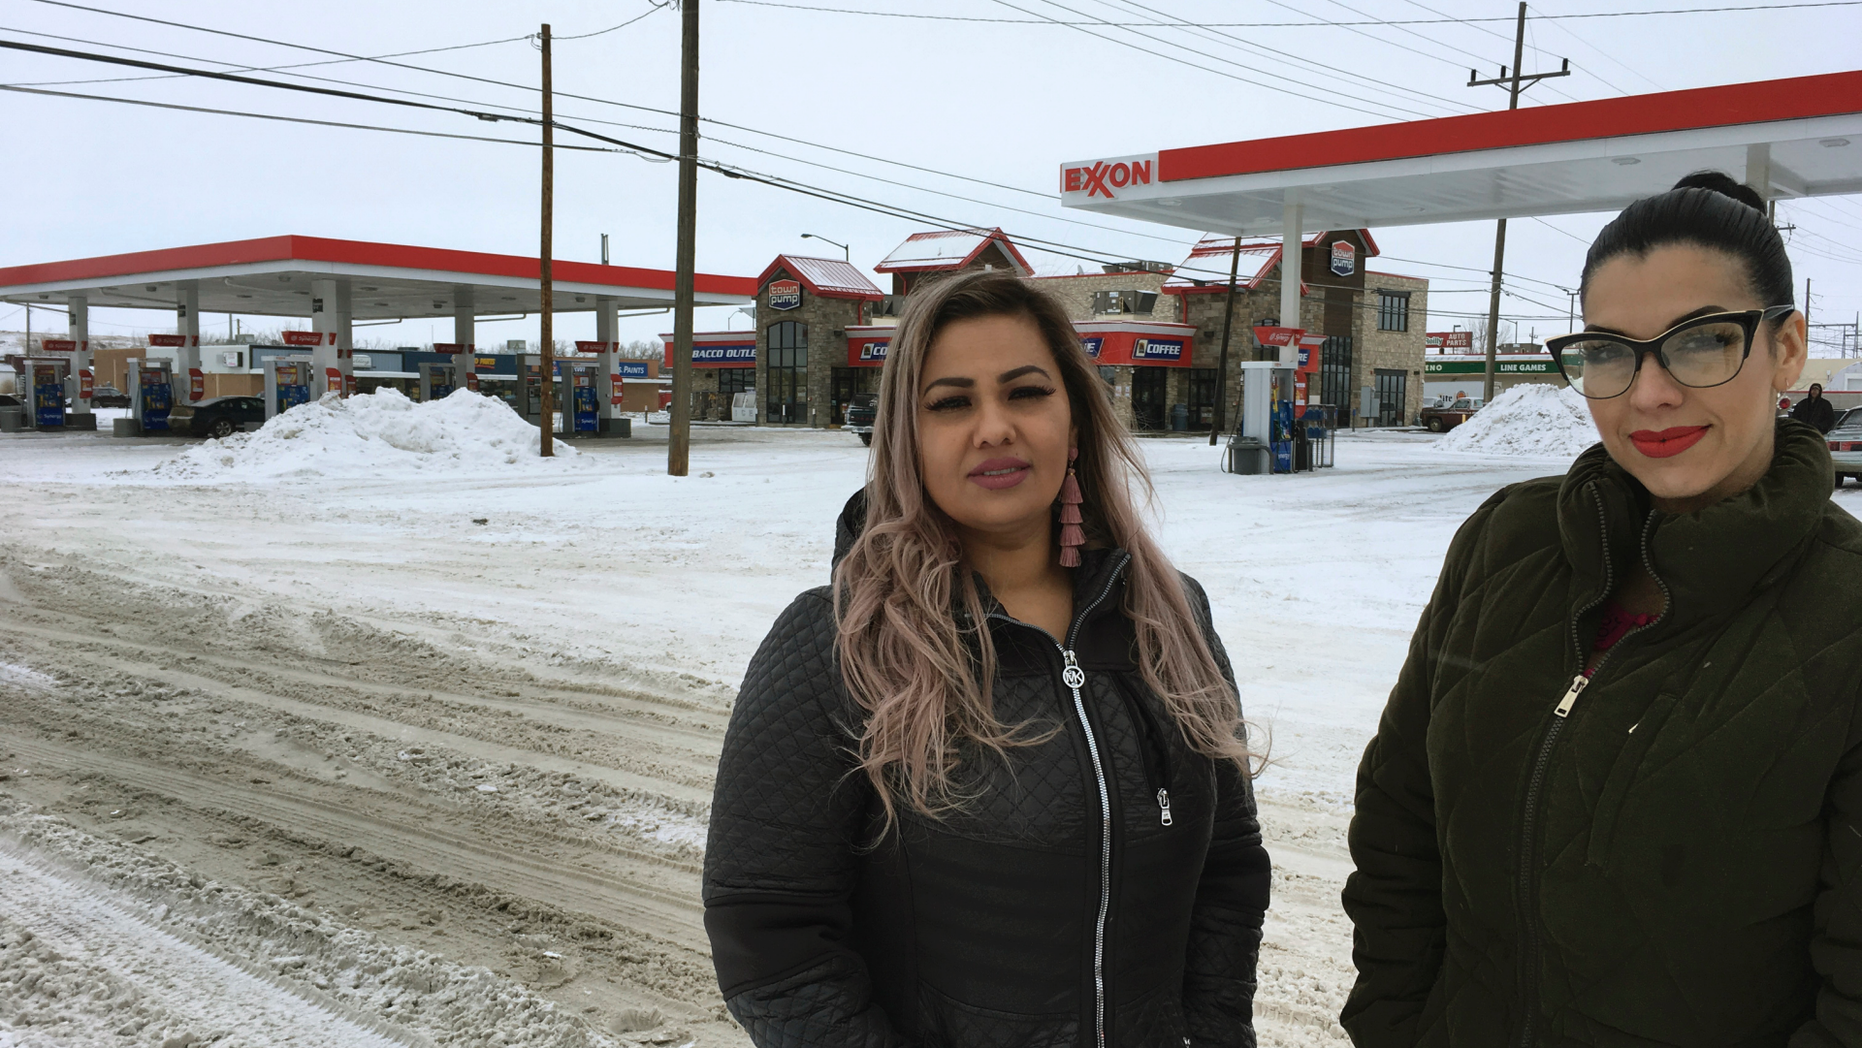 Martha Hernandez, left, and Ana Suda pose in front of a convenience store in Havre, Mont., where they say they were detained by a U.S Border Patrol agent for speaking Spanish last year.